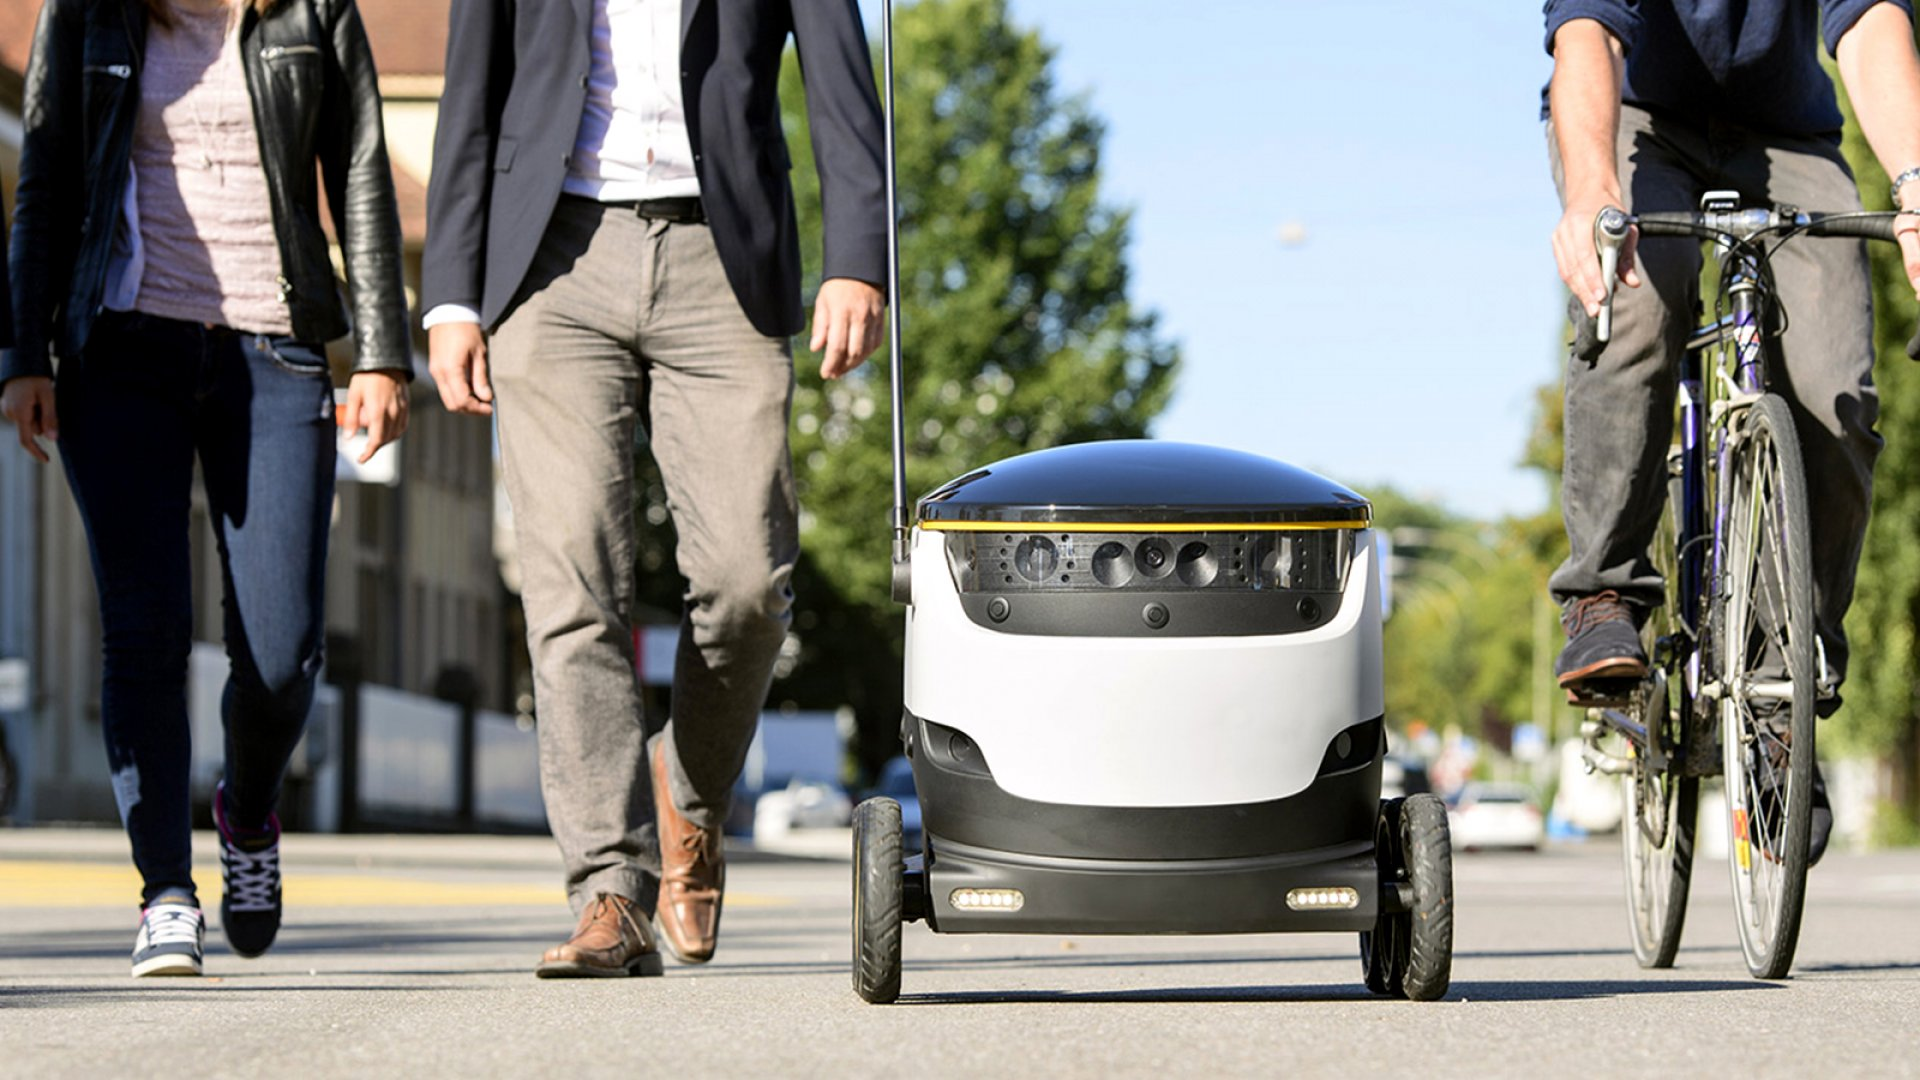 Delivery Bots Start Rolling Down the Streets of U.S. Cities